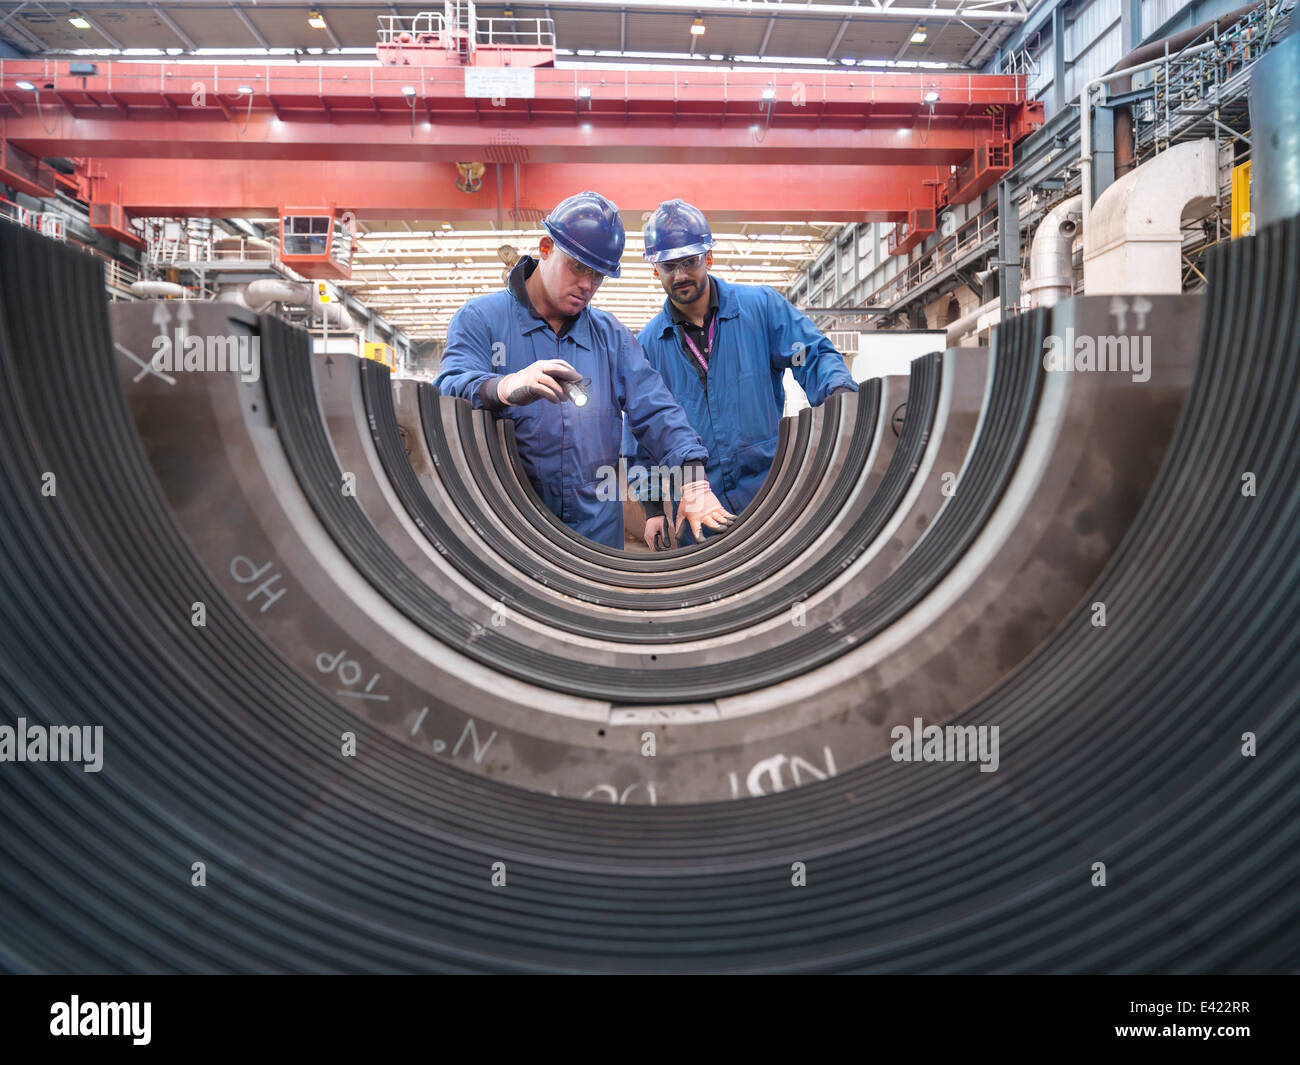 Engineers inspecting turbine housing during power station outage - Stock Image